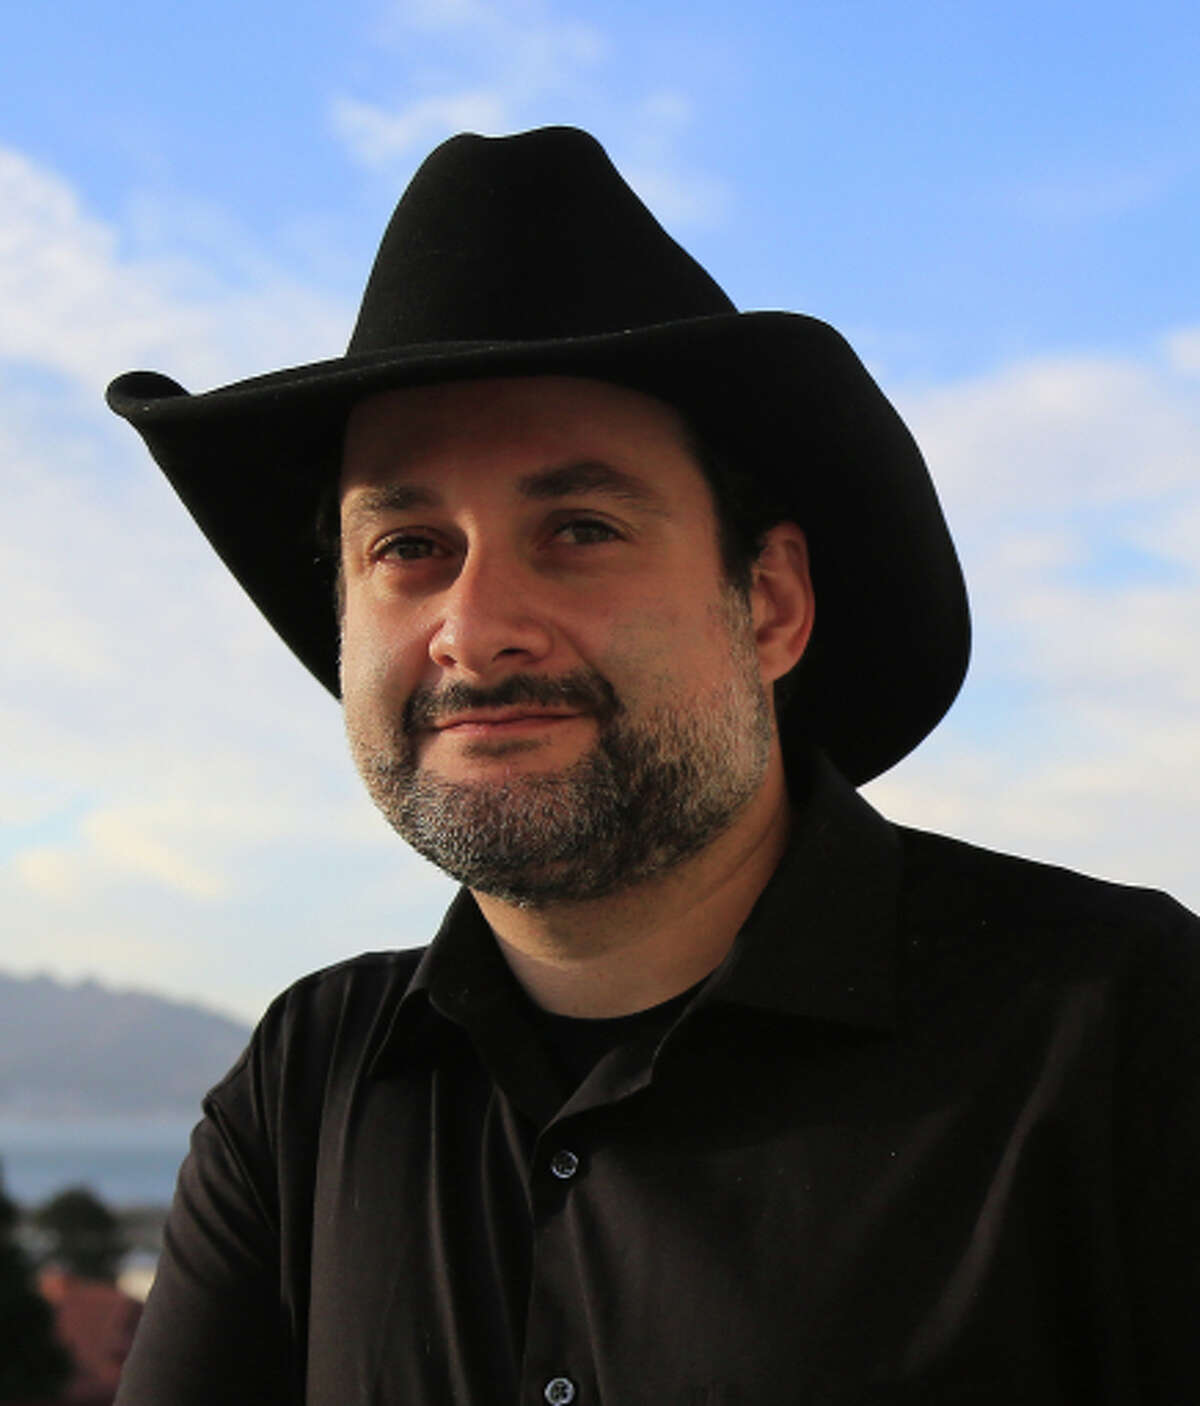 Dave Filoni created the animated